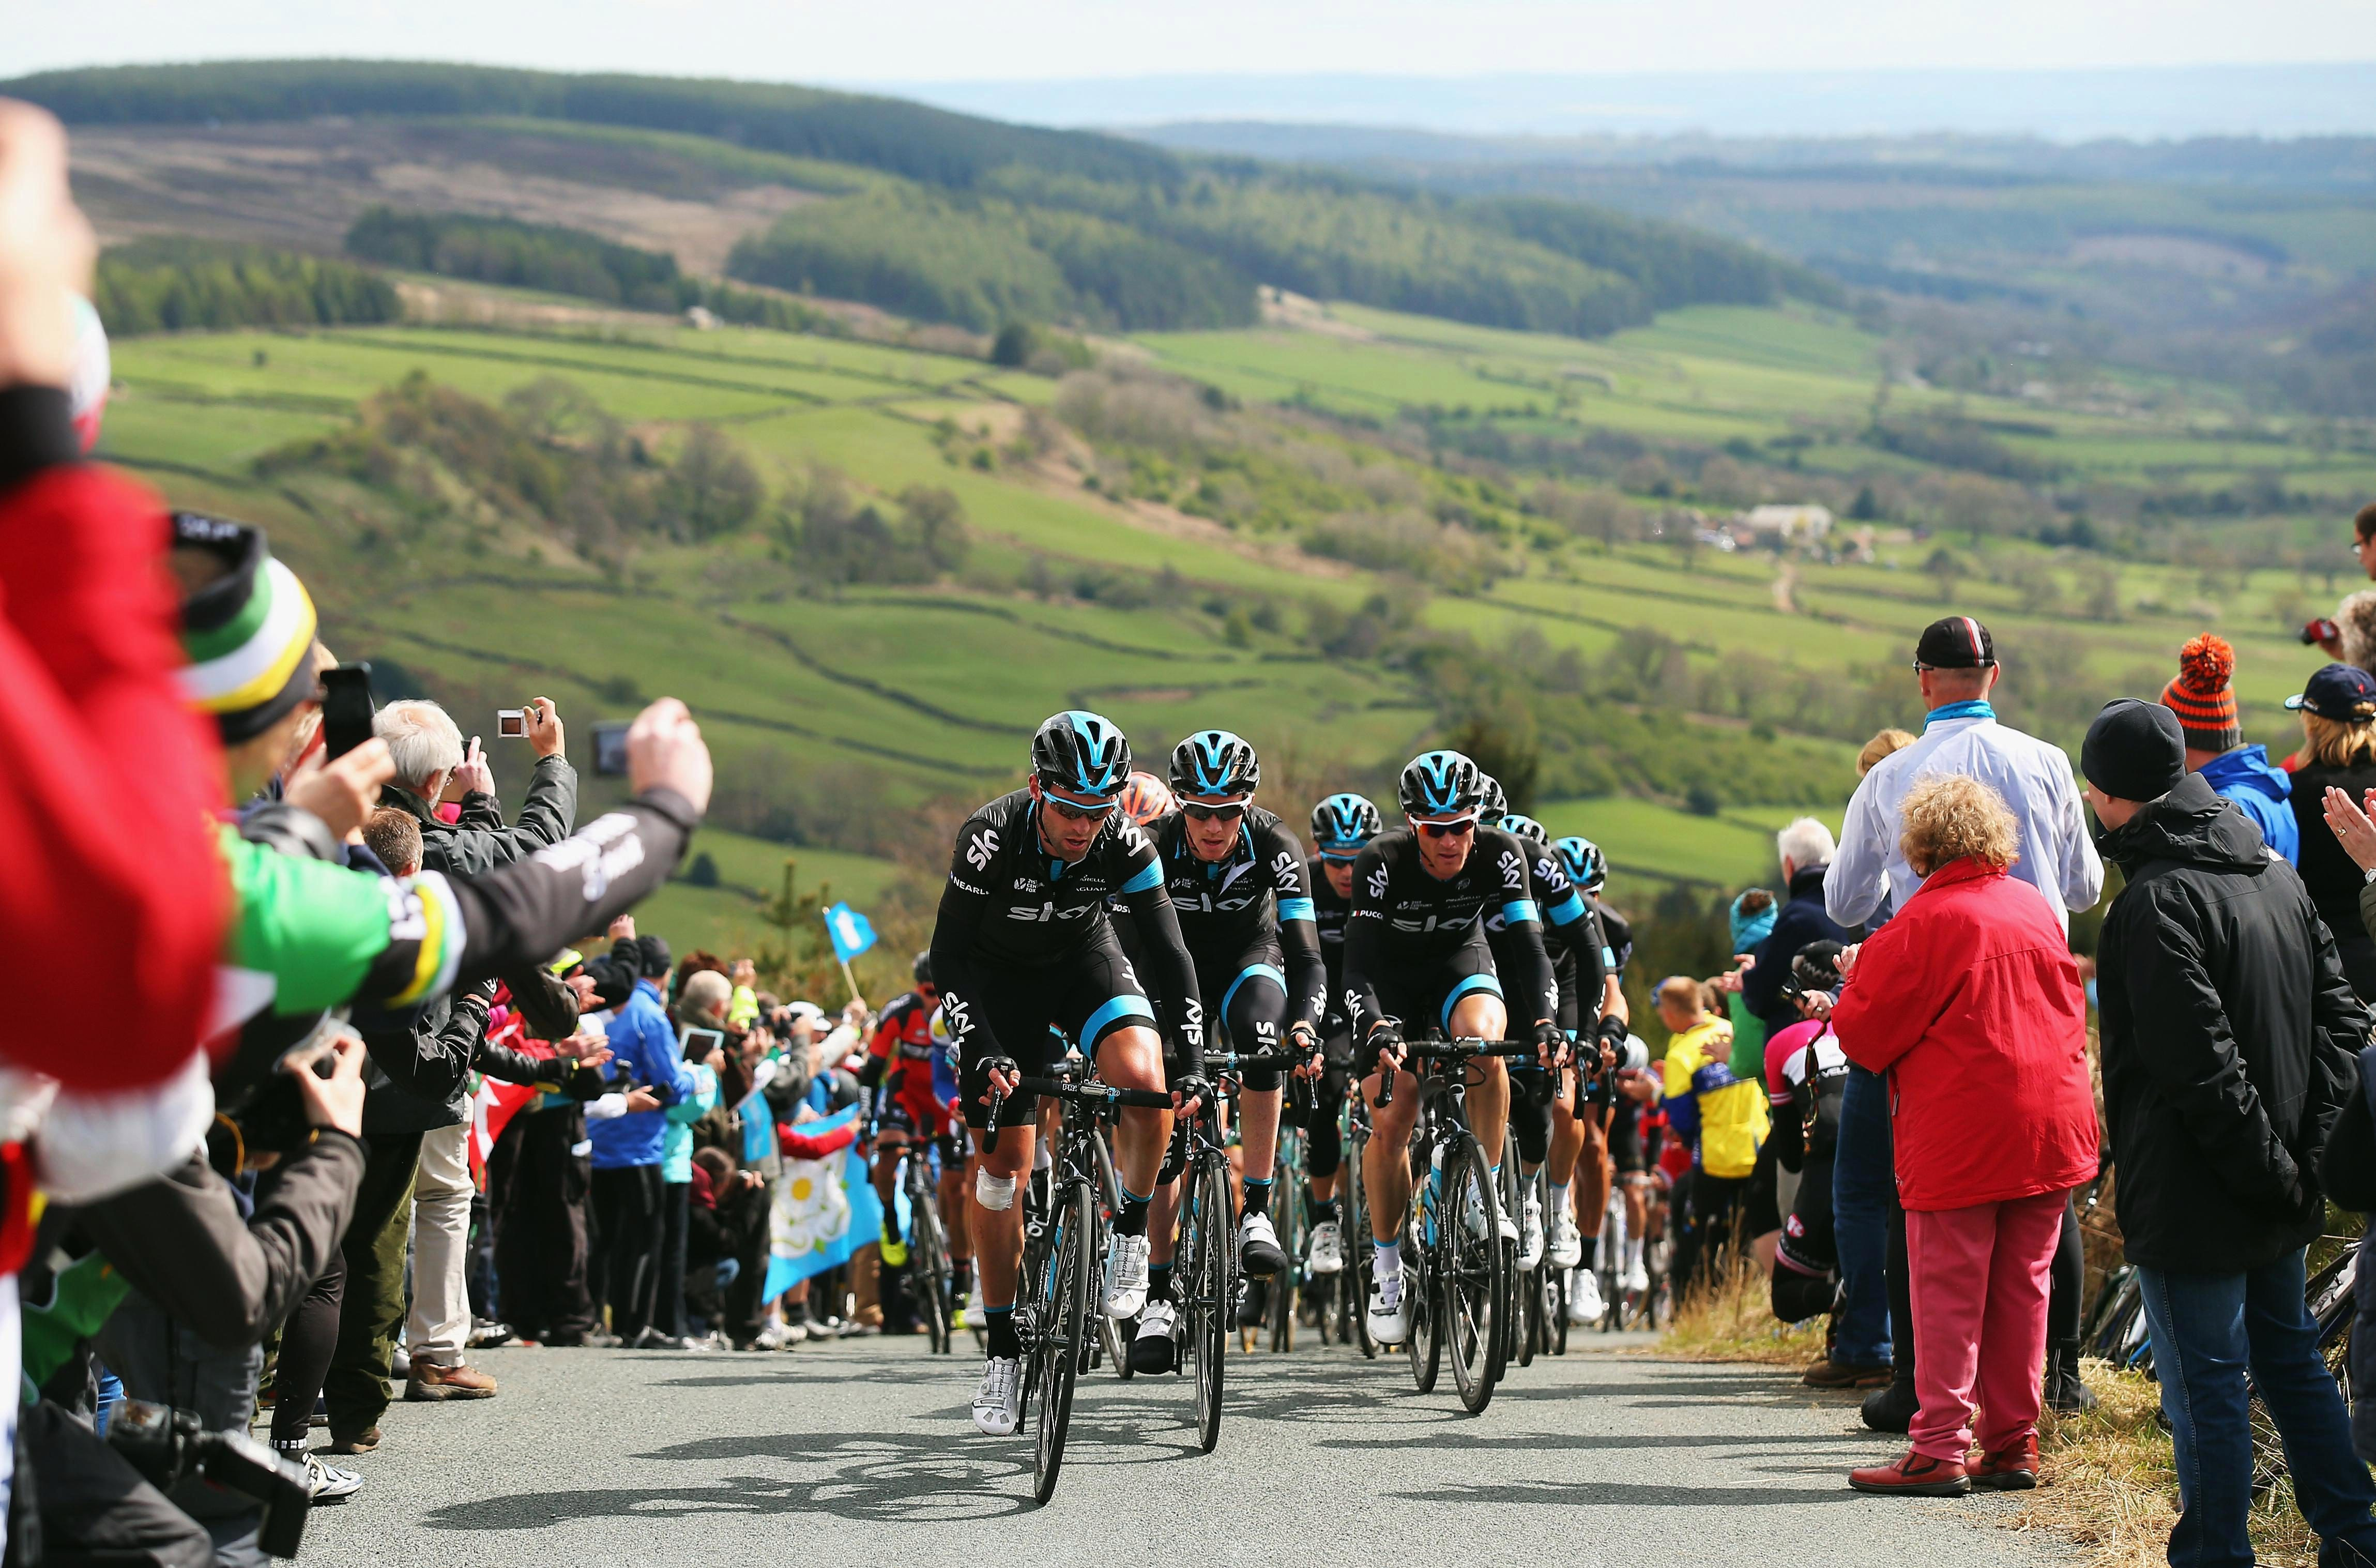 There will also be a women's race and a sportive in 2017